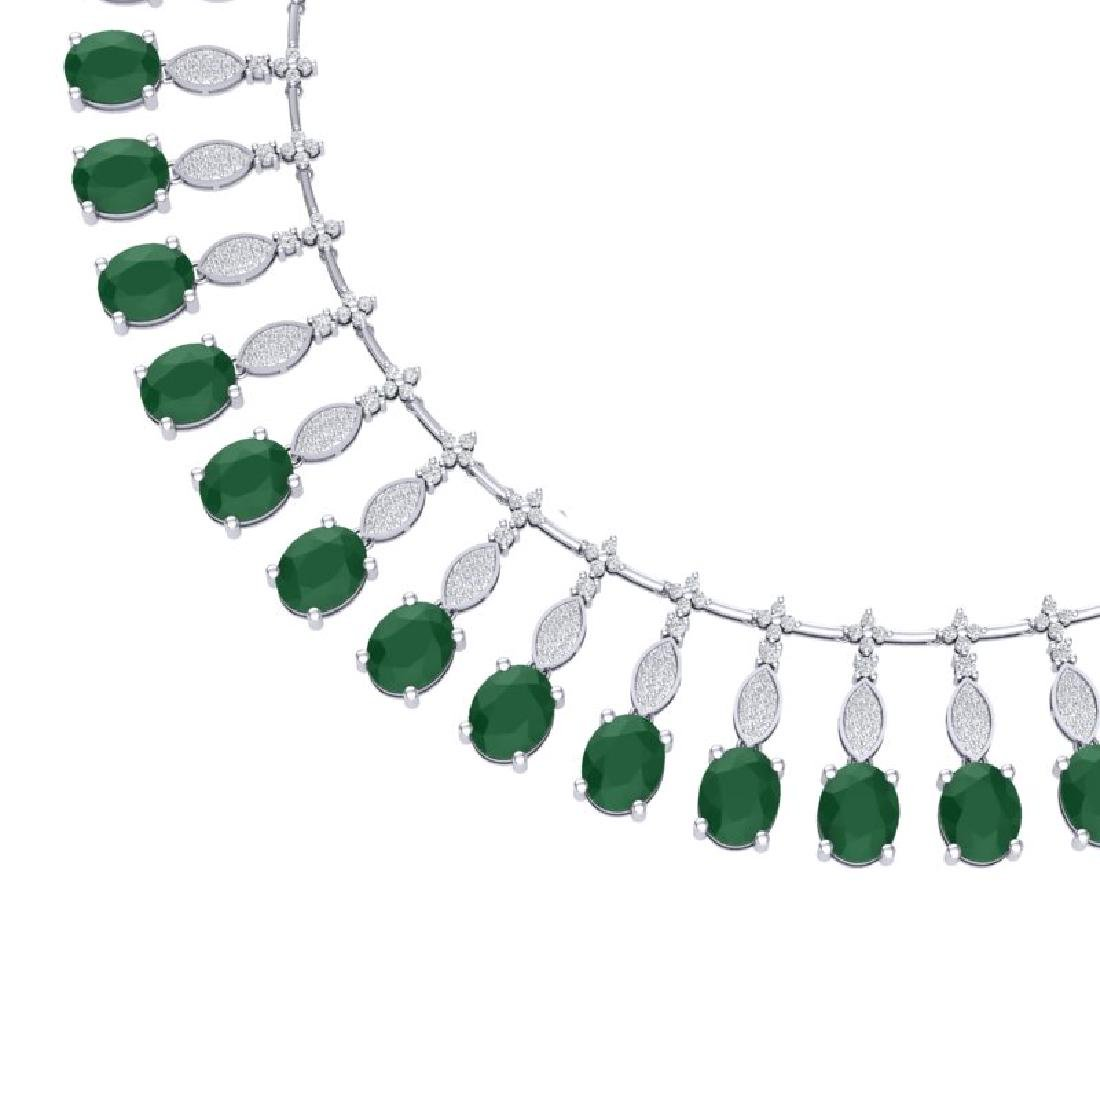 65.62 CTW Royalty Emerald & VS Diamond Necklace 18K